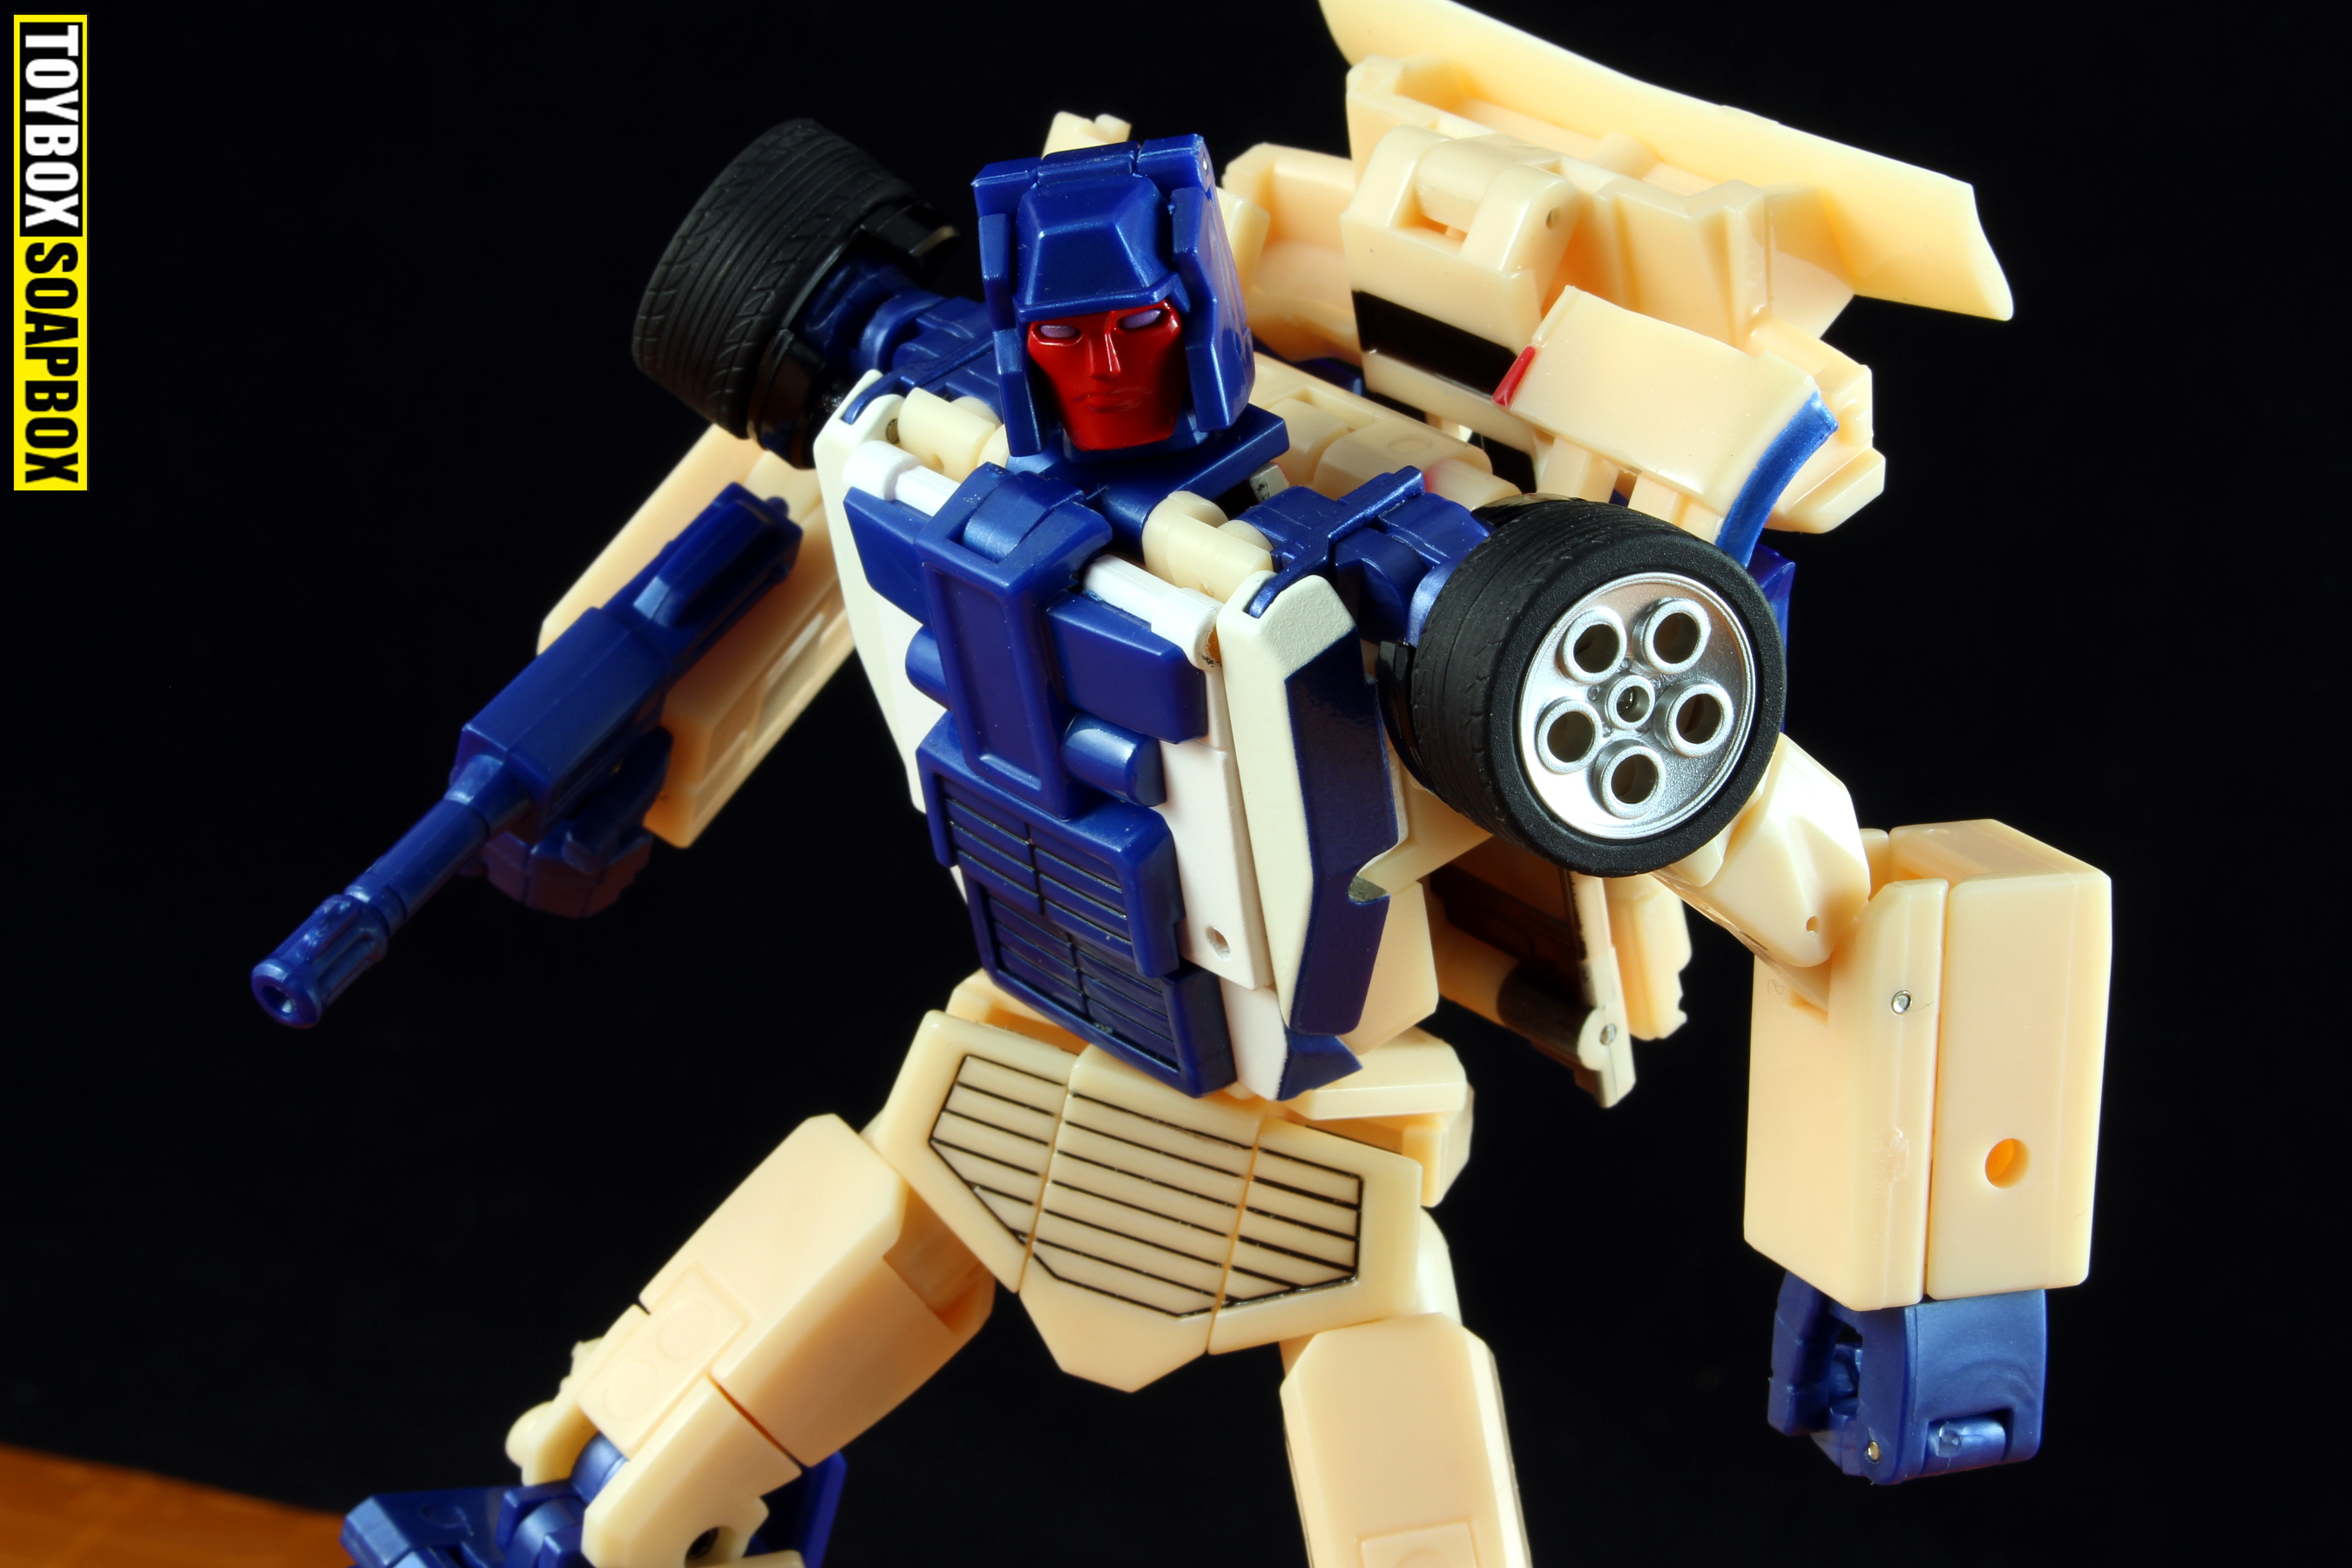 xtransbots crackup face review